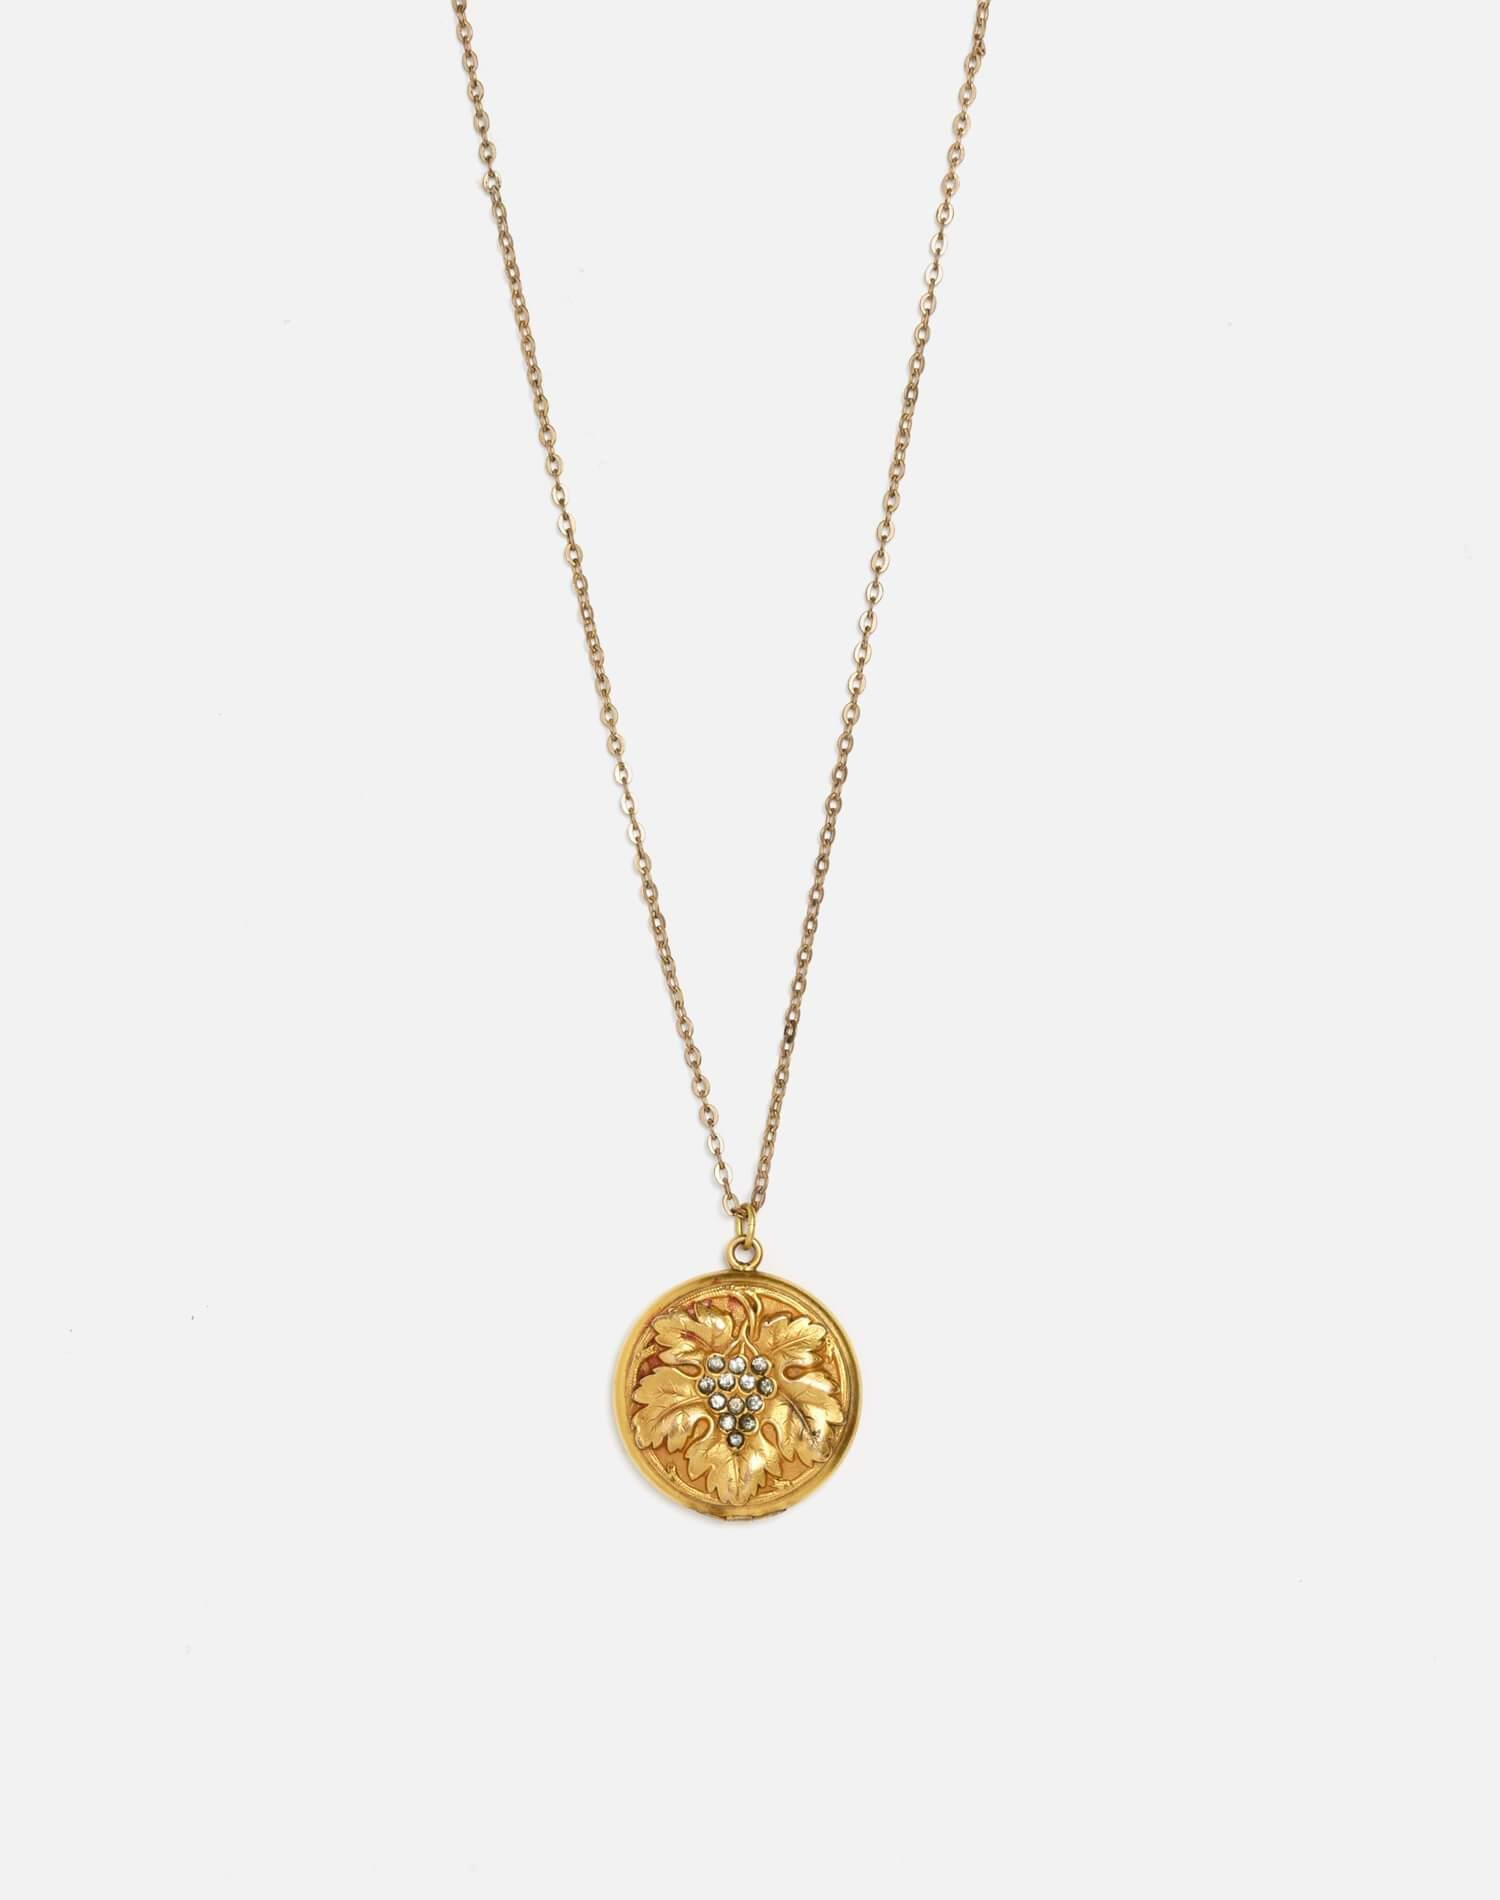 Turn Of The Century Grapes Of Wrath Gold-Filled Locket - #109